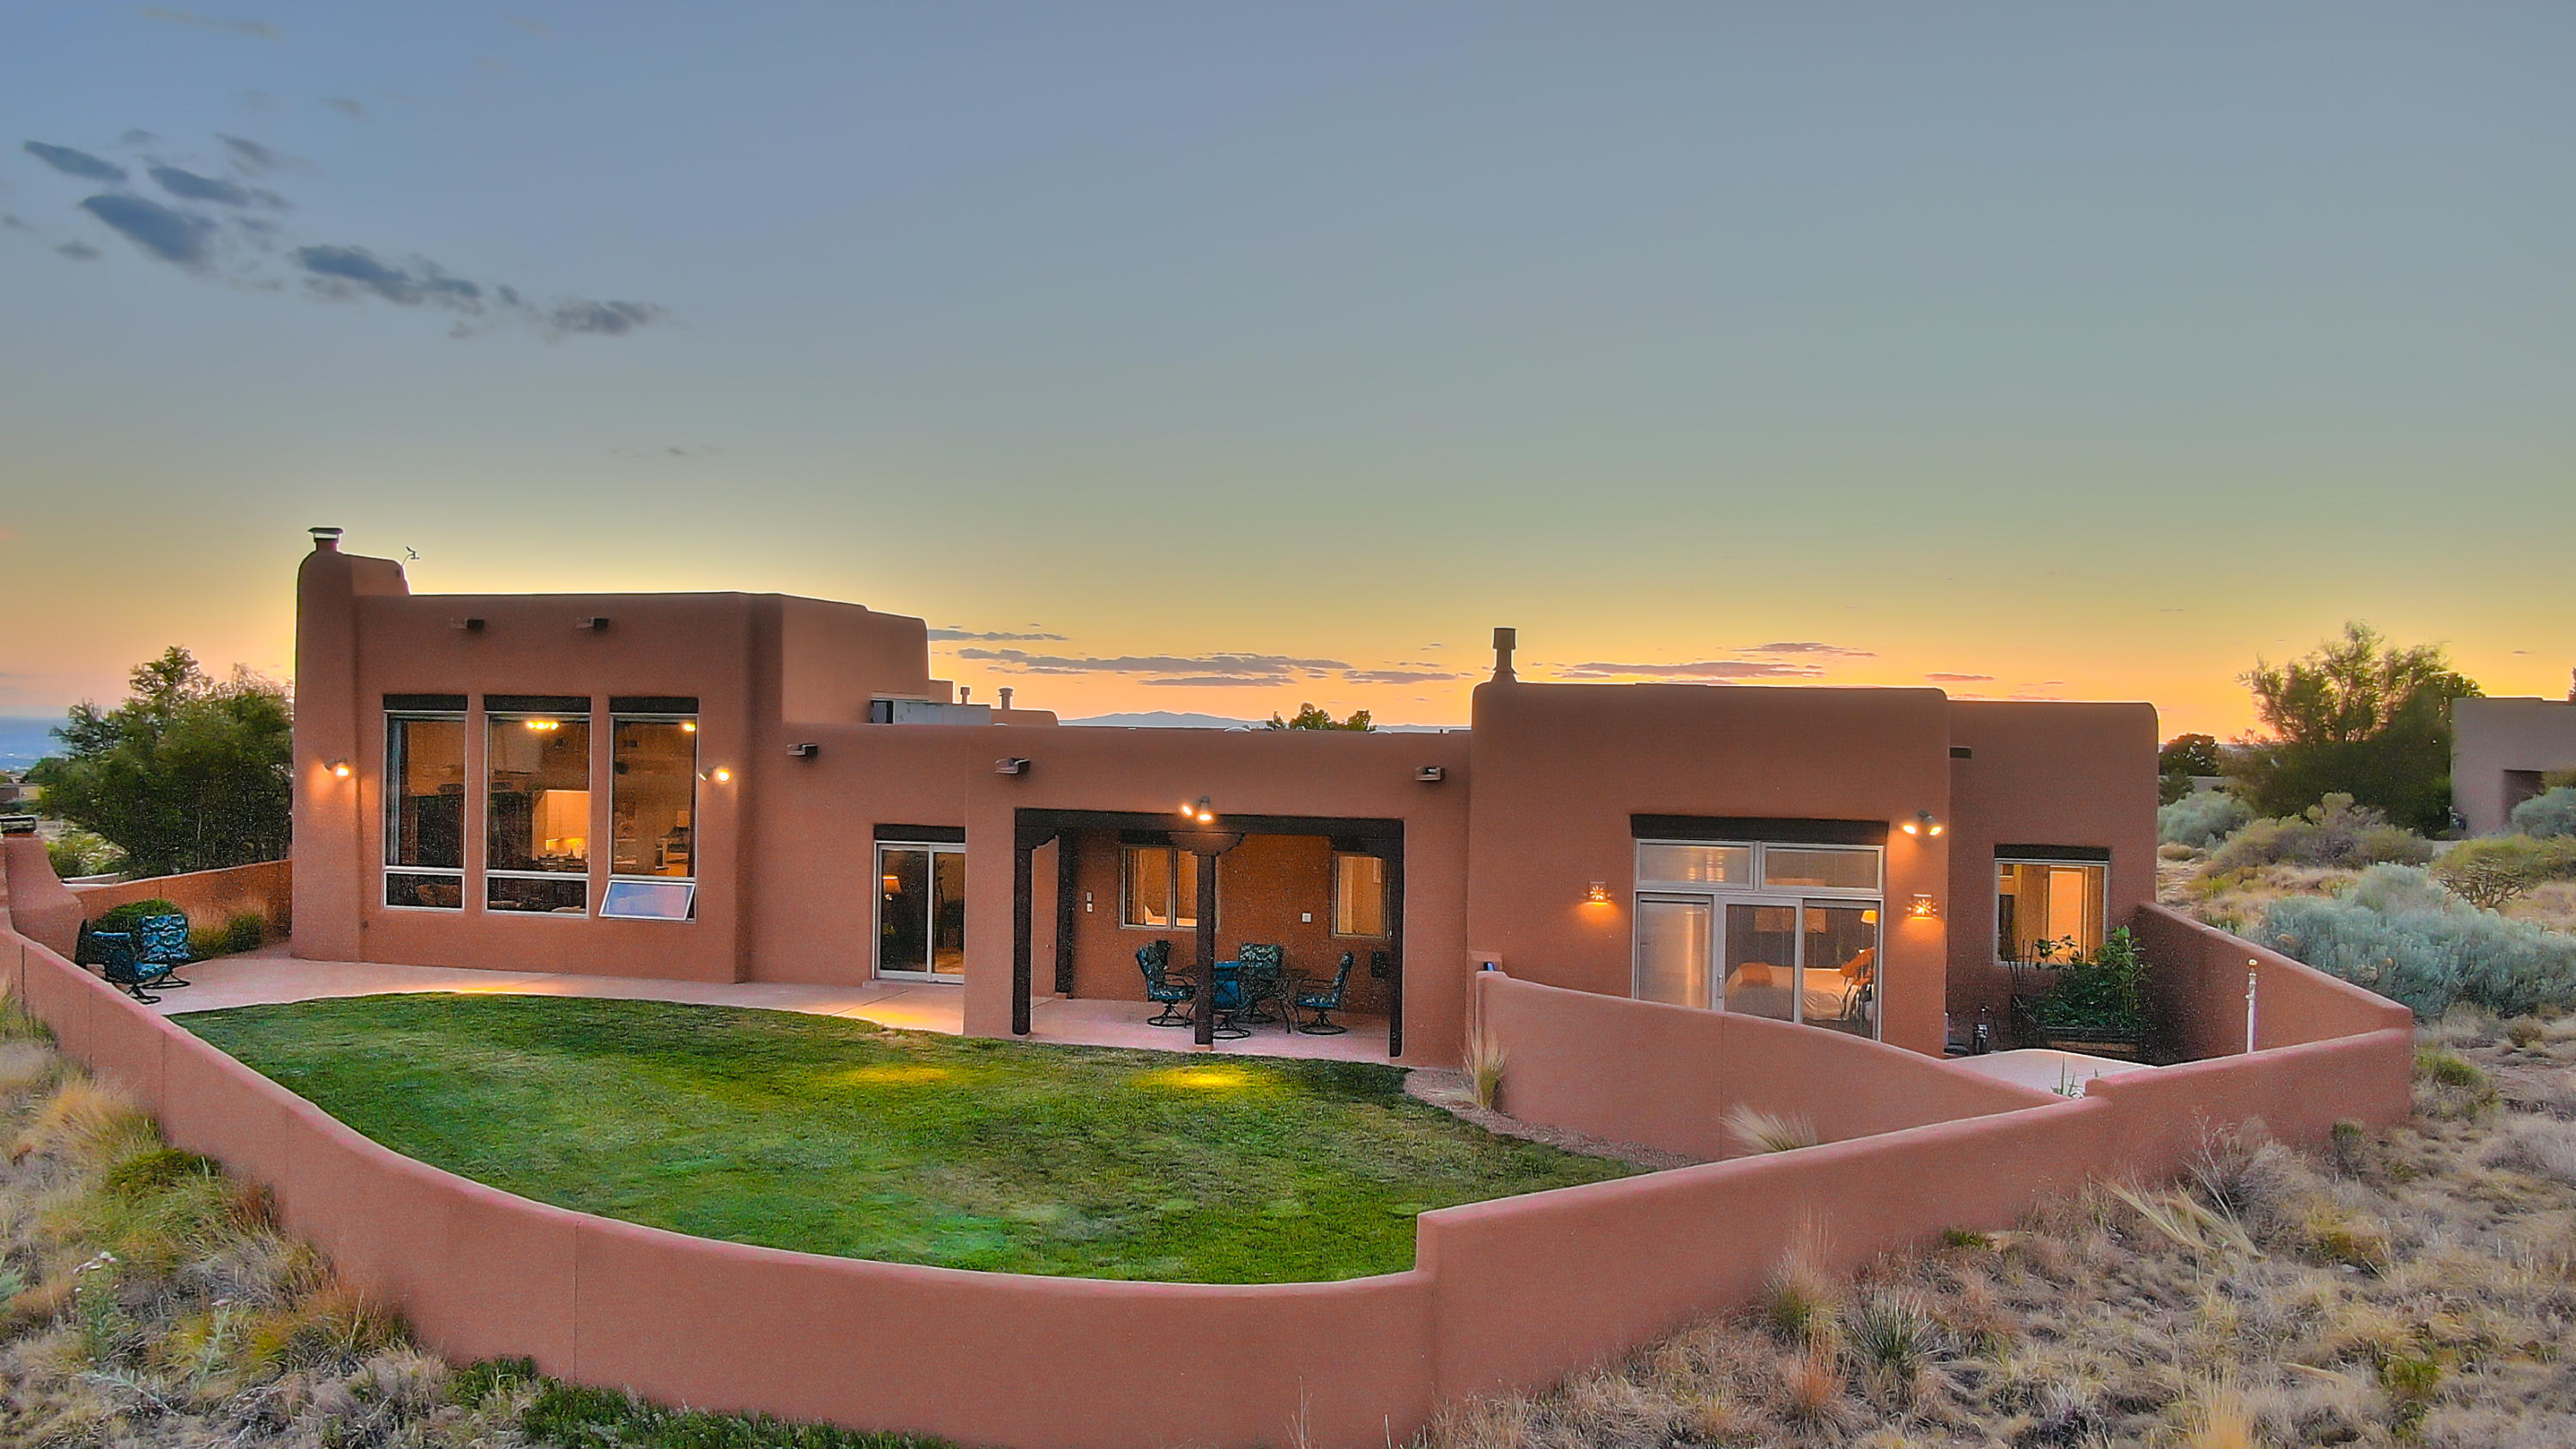 13522 Elena Gallegos Place NE Property Photo - Albuquerque, NM real estate listing